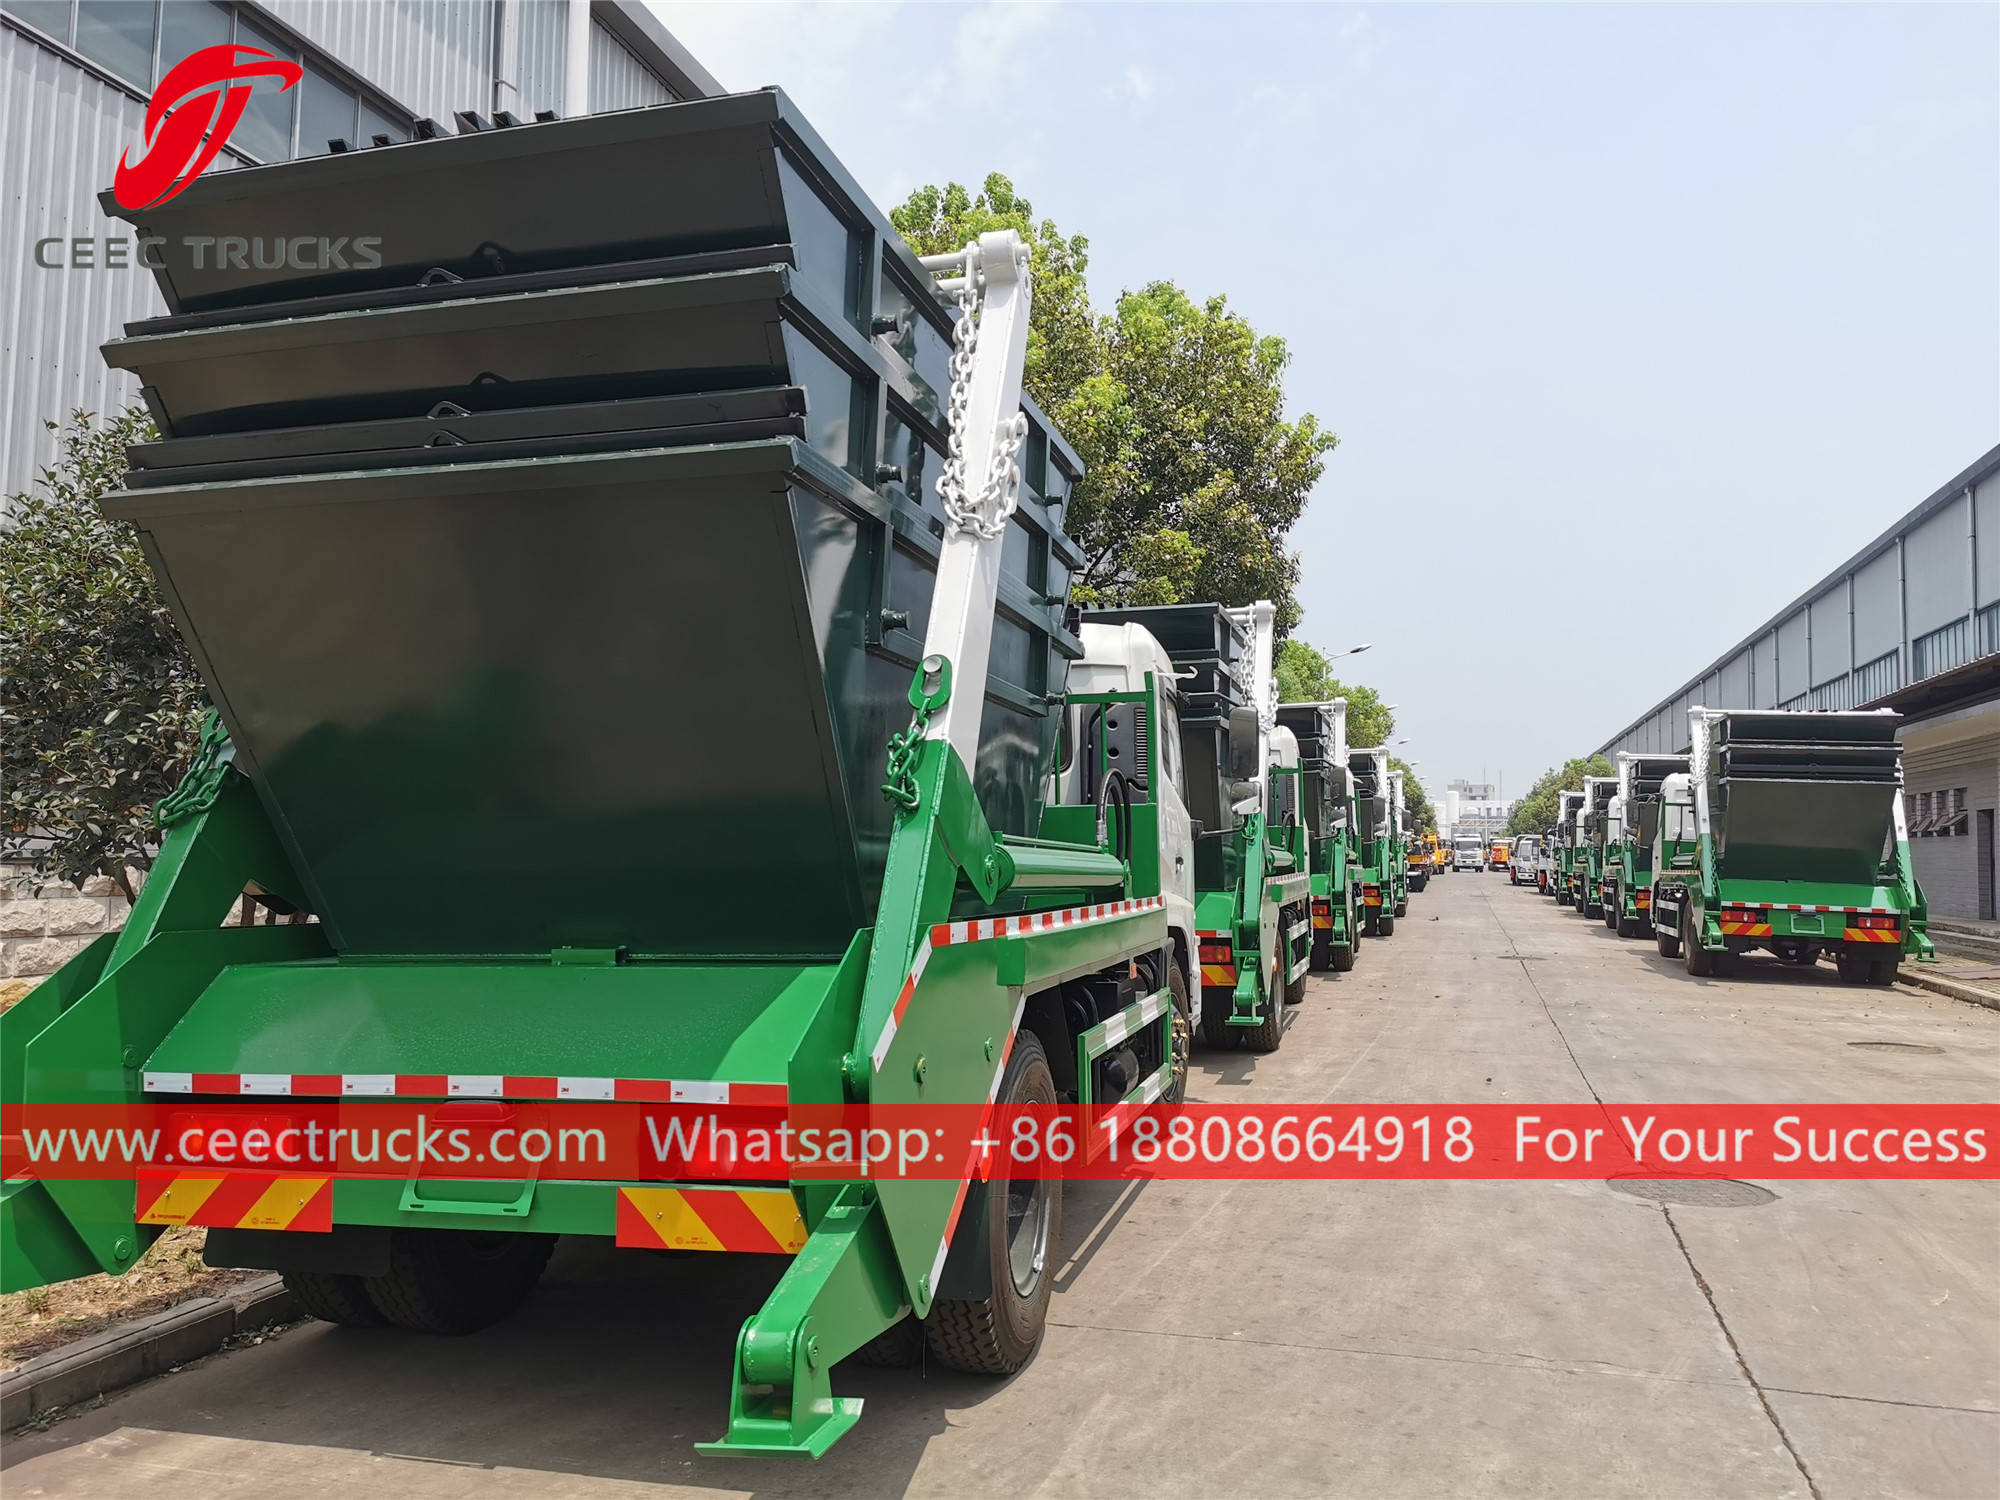 20 units RHD swing arm refuse trucks for Tanzania